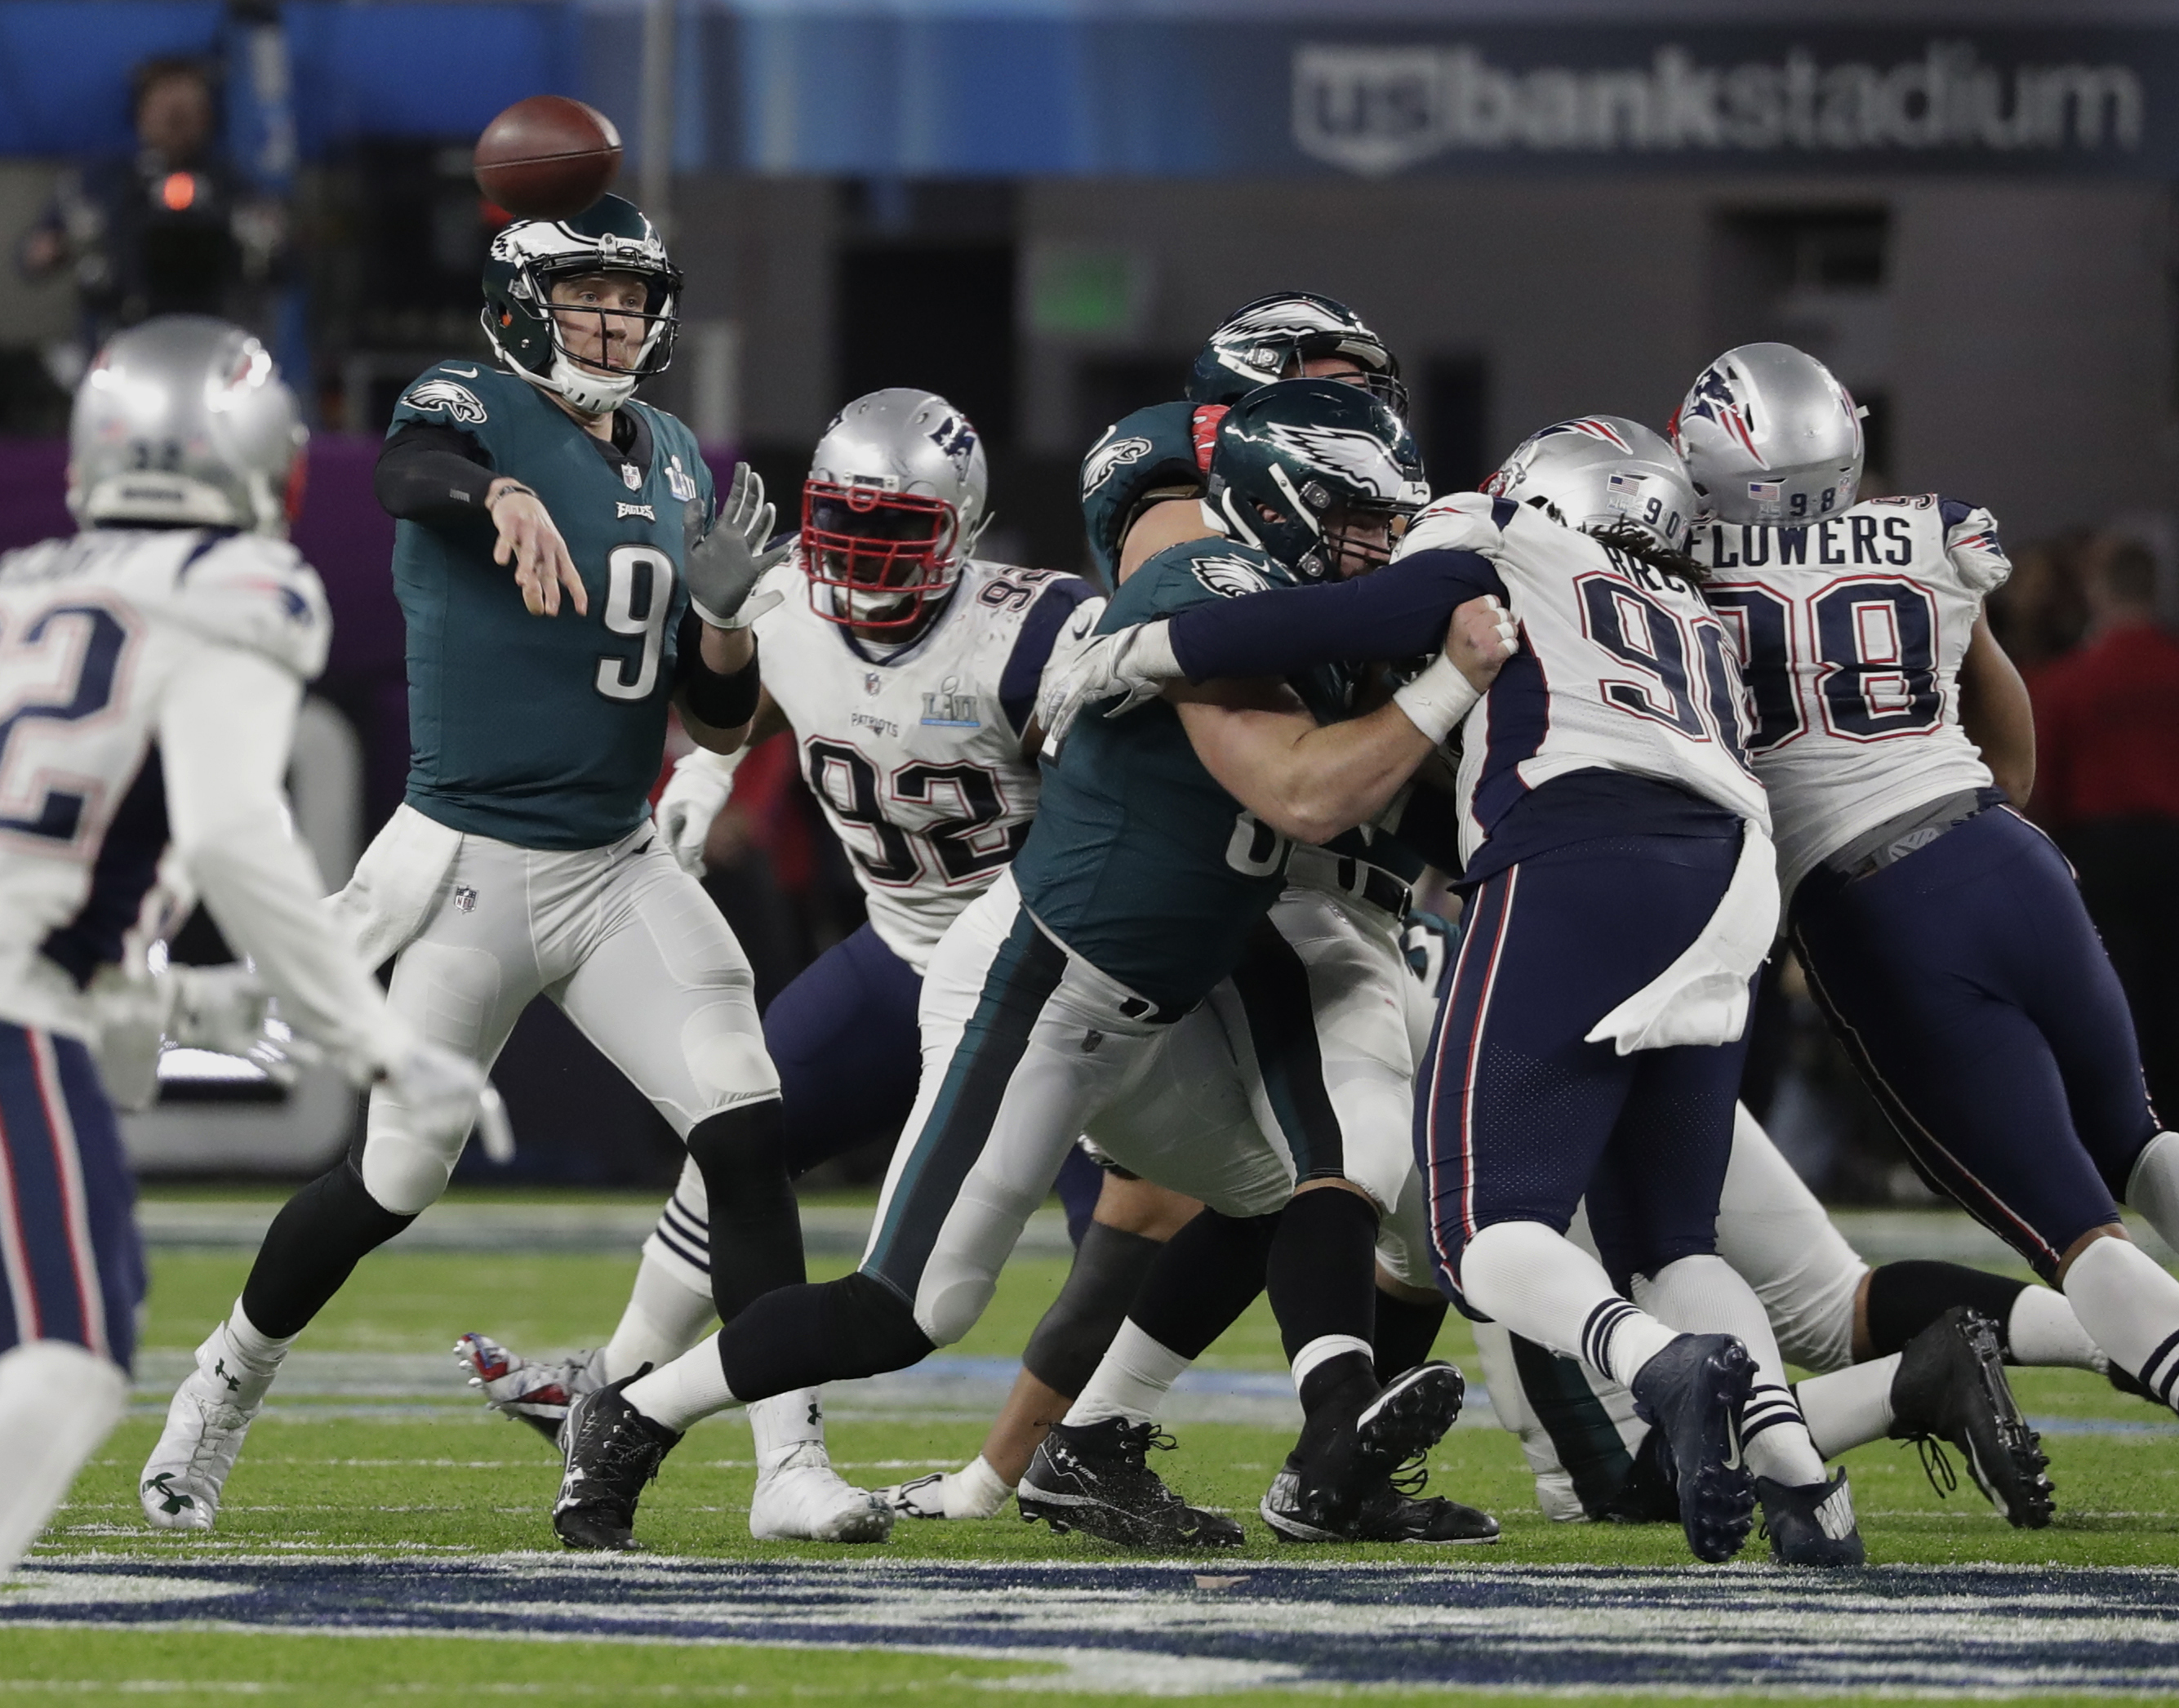 "<div class=""meta image-caption""><div class=""origin-logo origin-image ap""><span>AP</span></div><span class=""caption-text"">Philadelphia Eagles quarterback Nick Foles (9) throws against the New England Patriots, during the second half of the NFL Super Bowl 52 football game. (AP Photo/Tony Gutierrez)</span></div>"